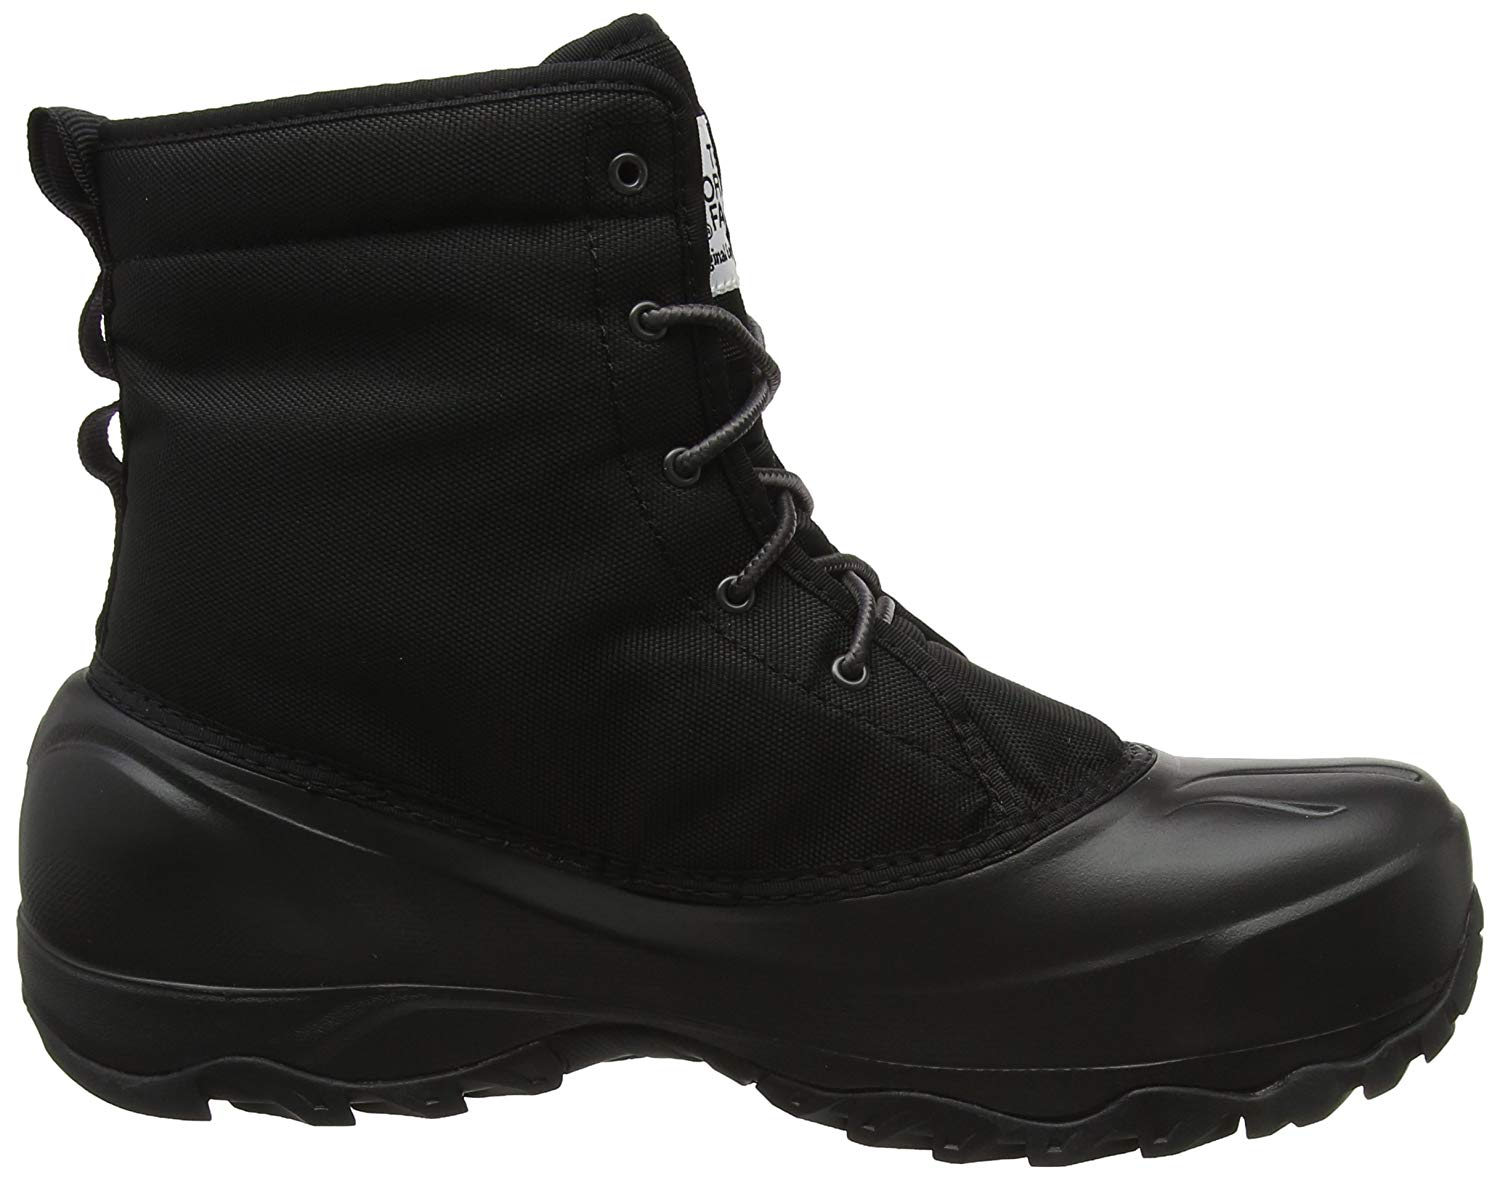 799b2c8f6a5 Details about The North Face Men's Tsumoru Boot, Black, Size 10.5 4QWj